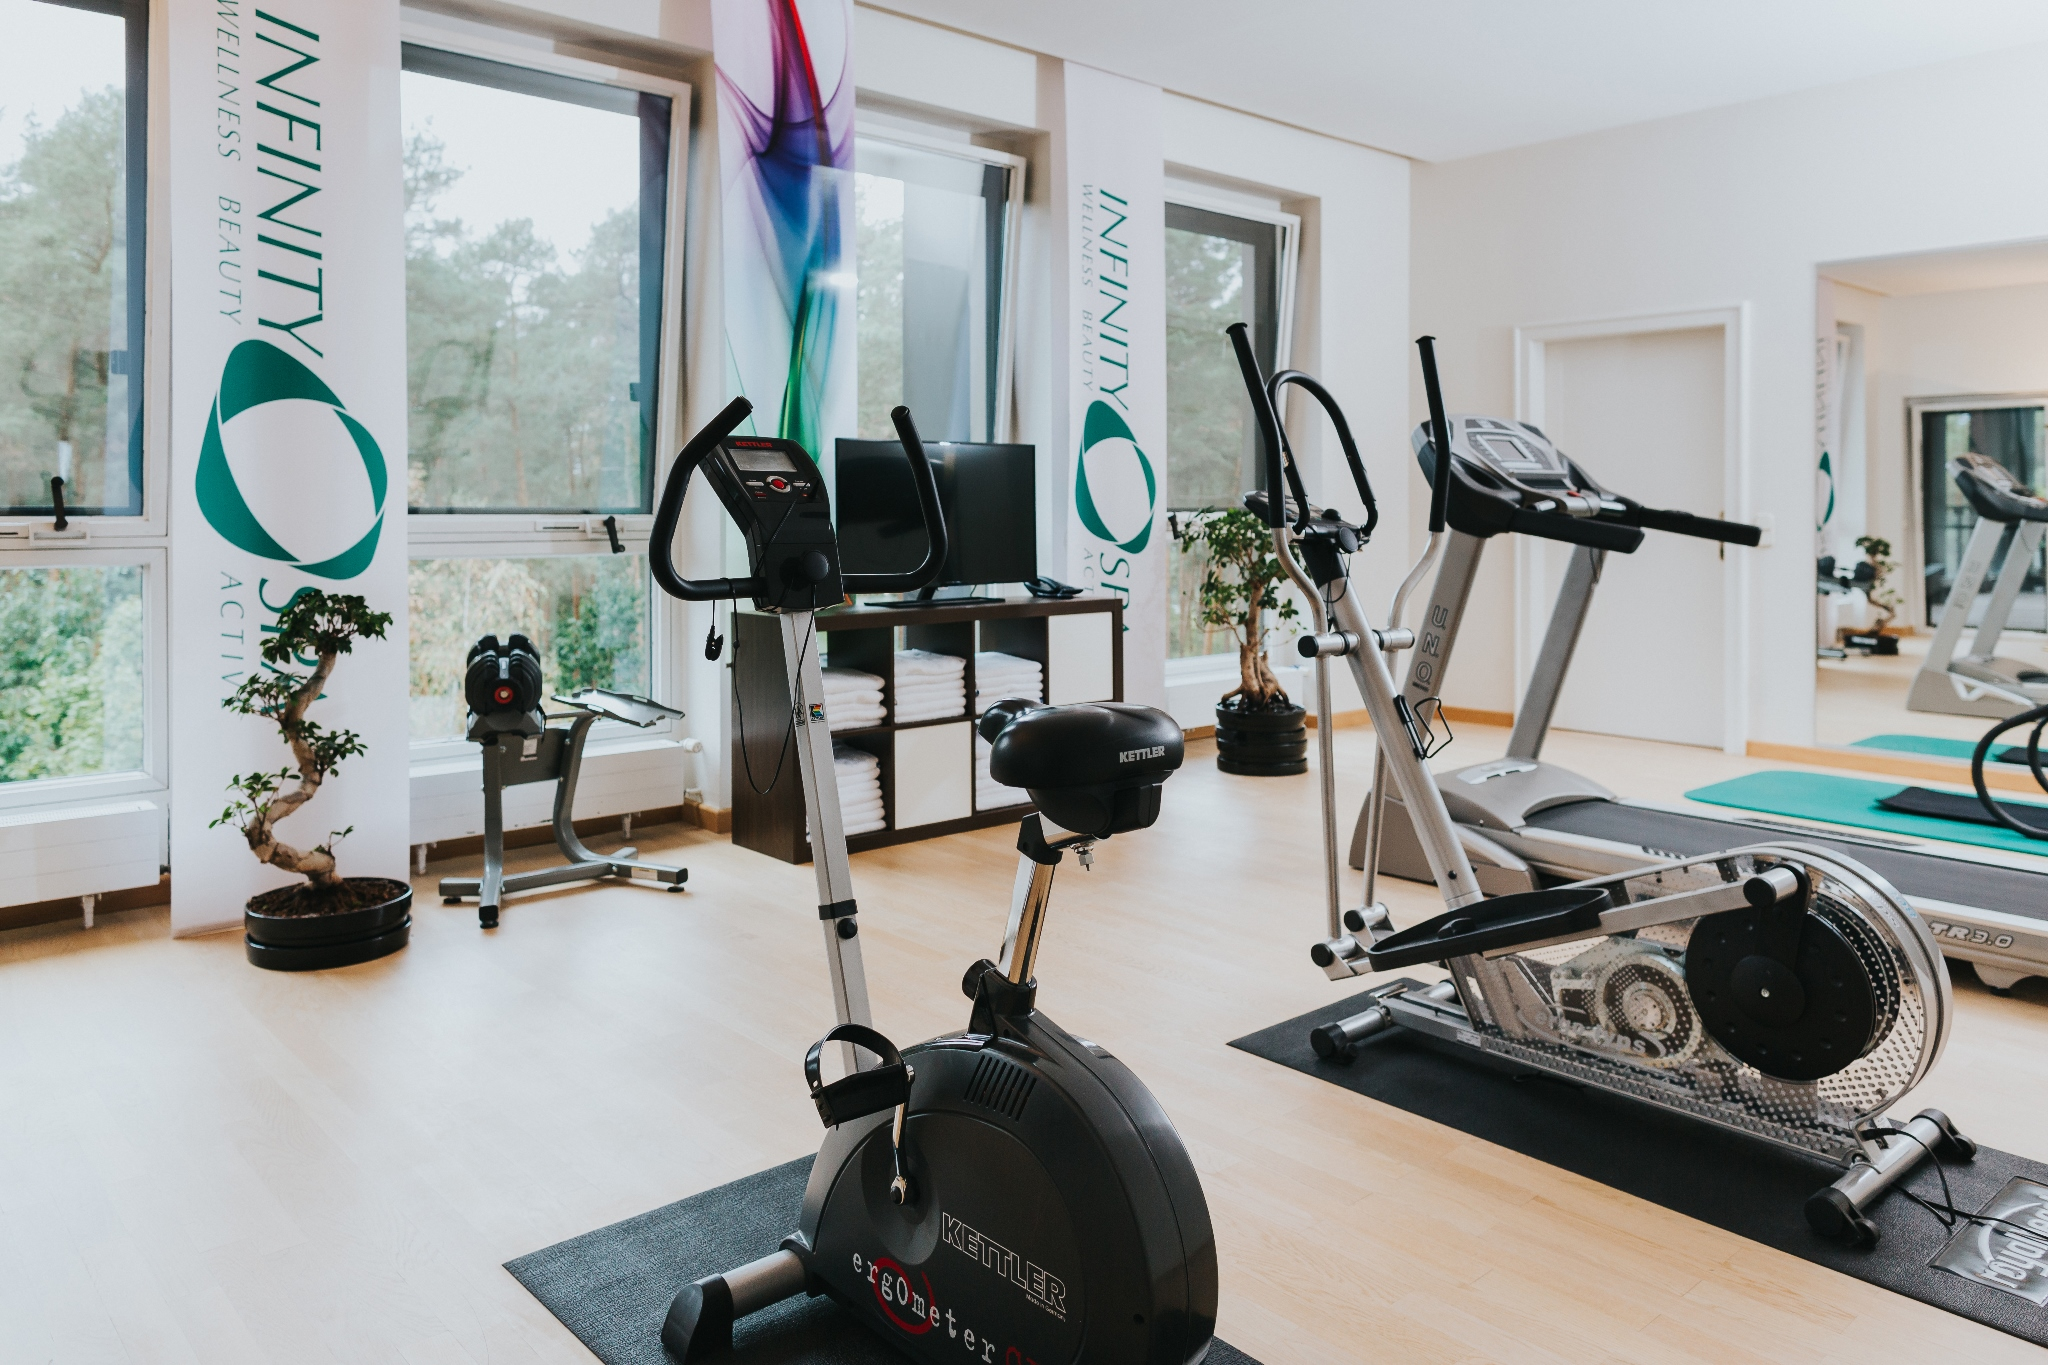 Fitness_Hotel_Forsthaus_Nuernberg_Fuerth_